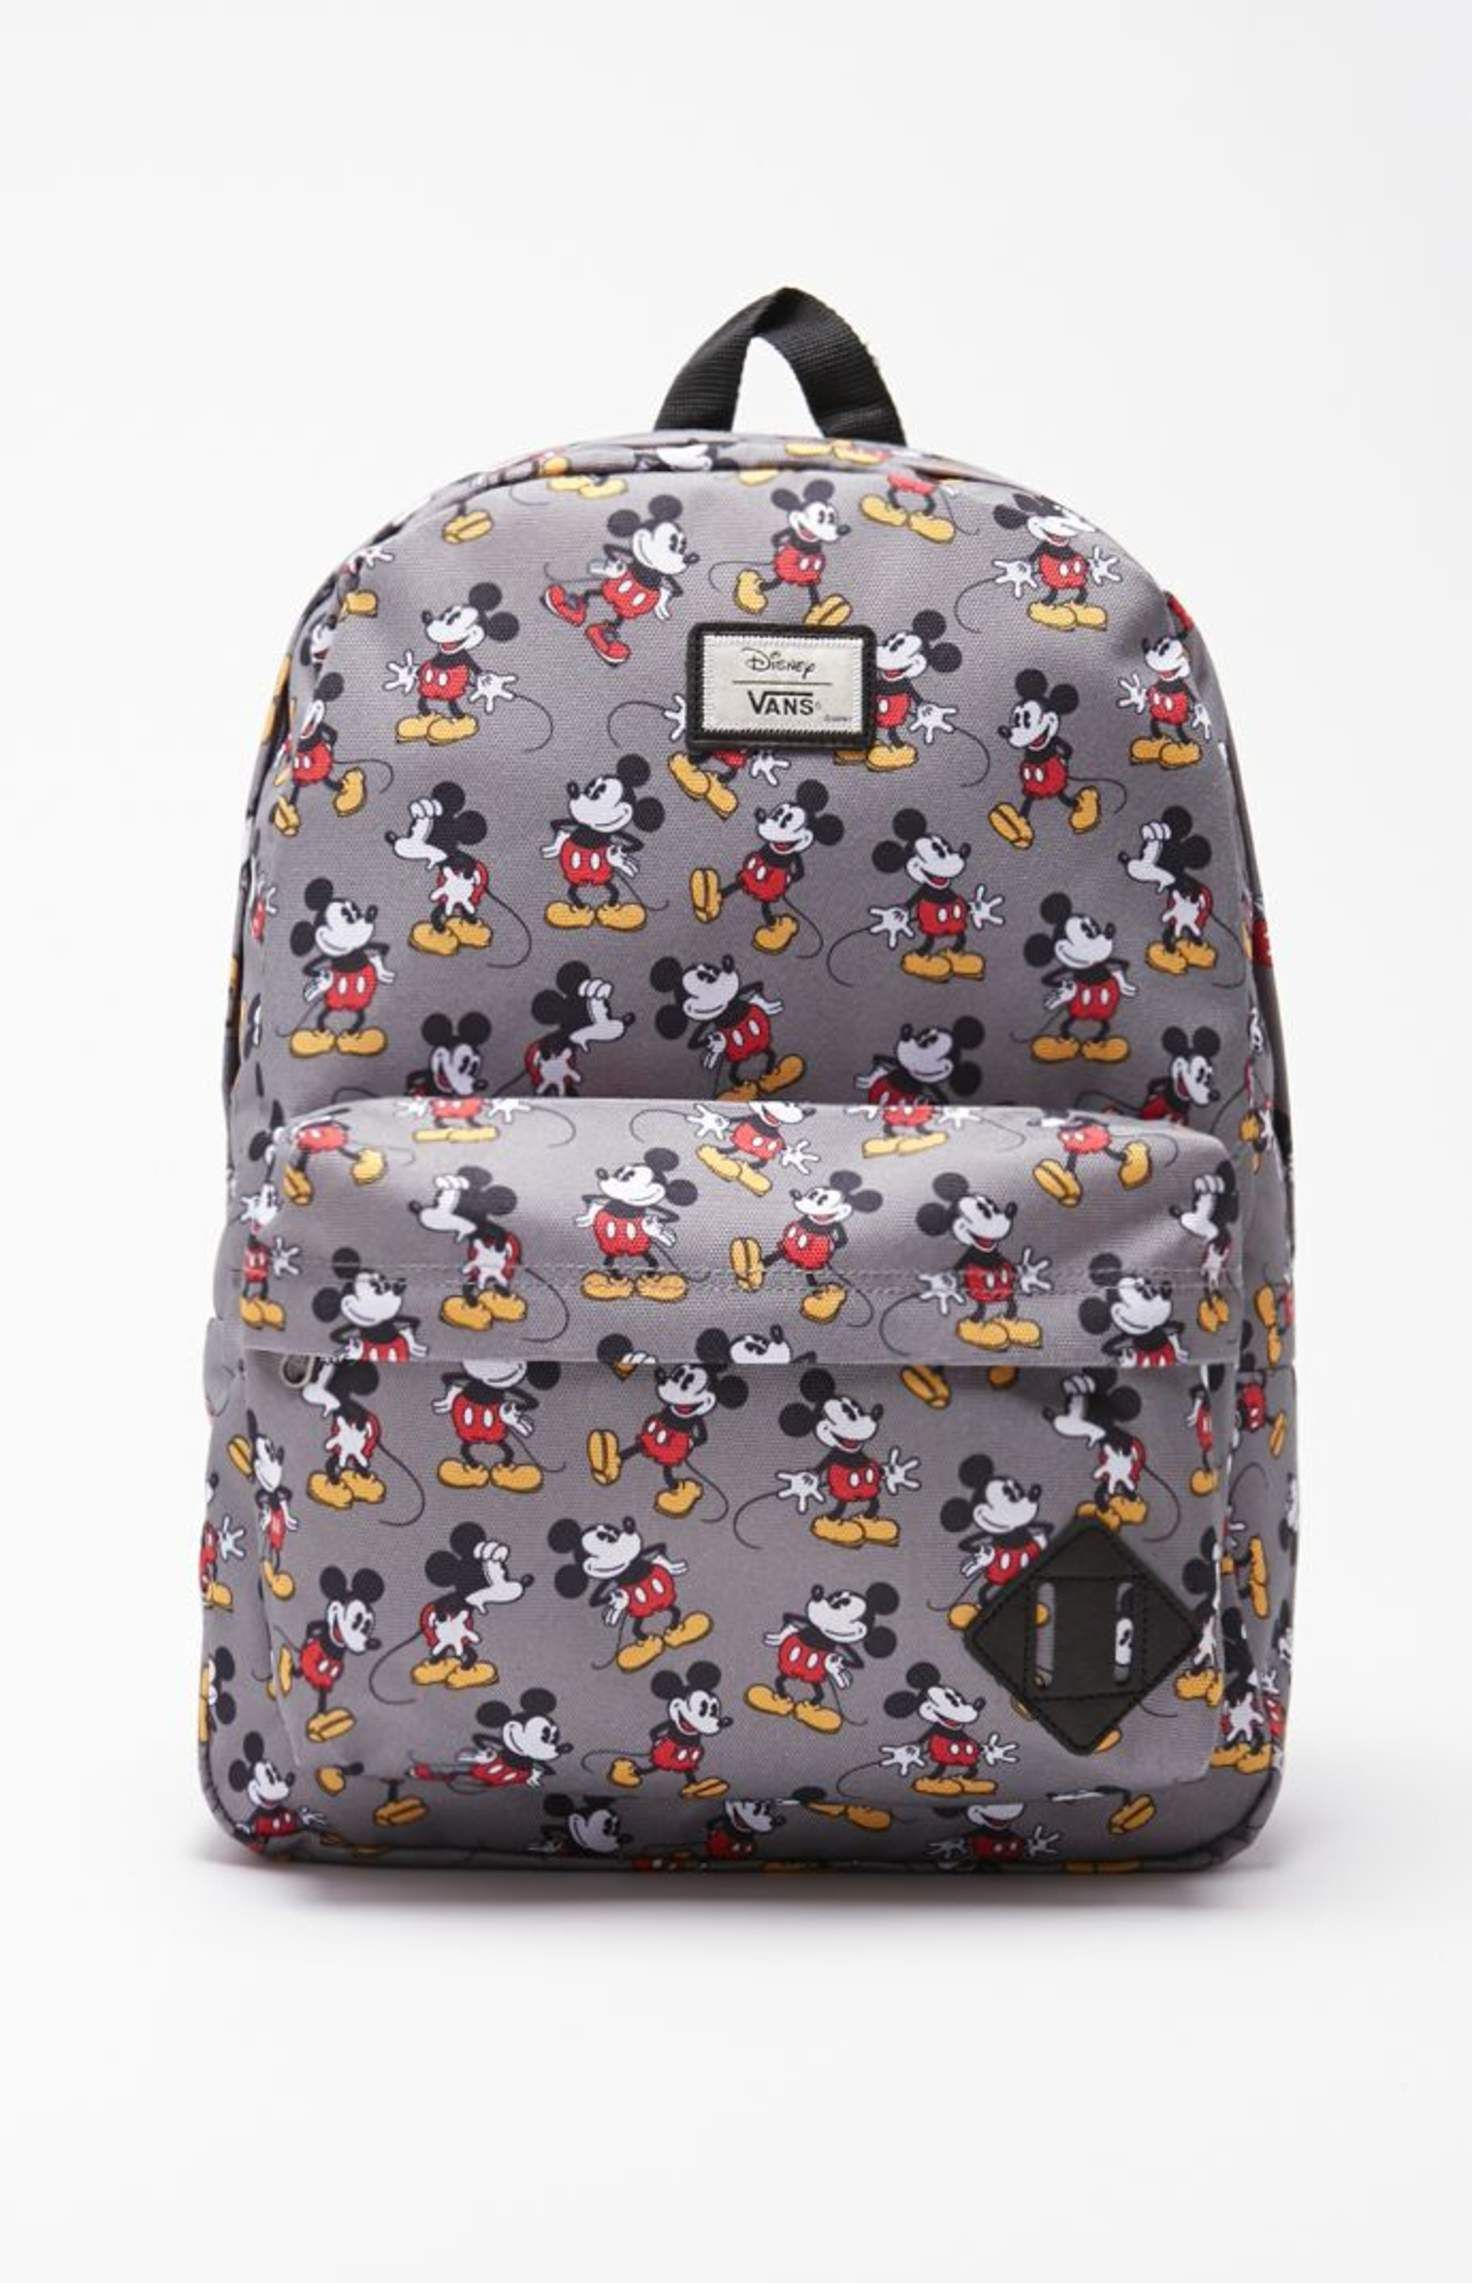 ff4f5b71dab2 Vans - Disney Old Skool II Mickey Mouse School Backpack - Mens Backpacks -  Gray - NOSZ